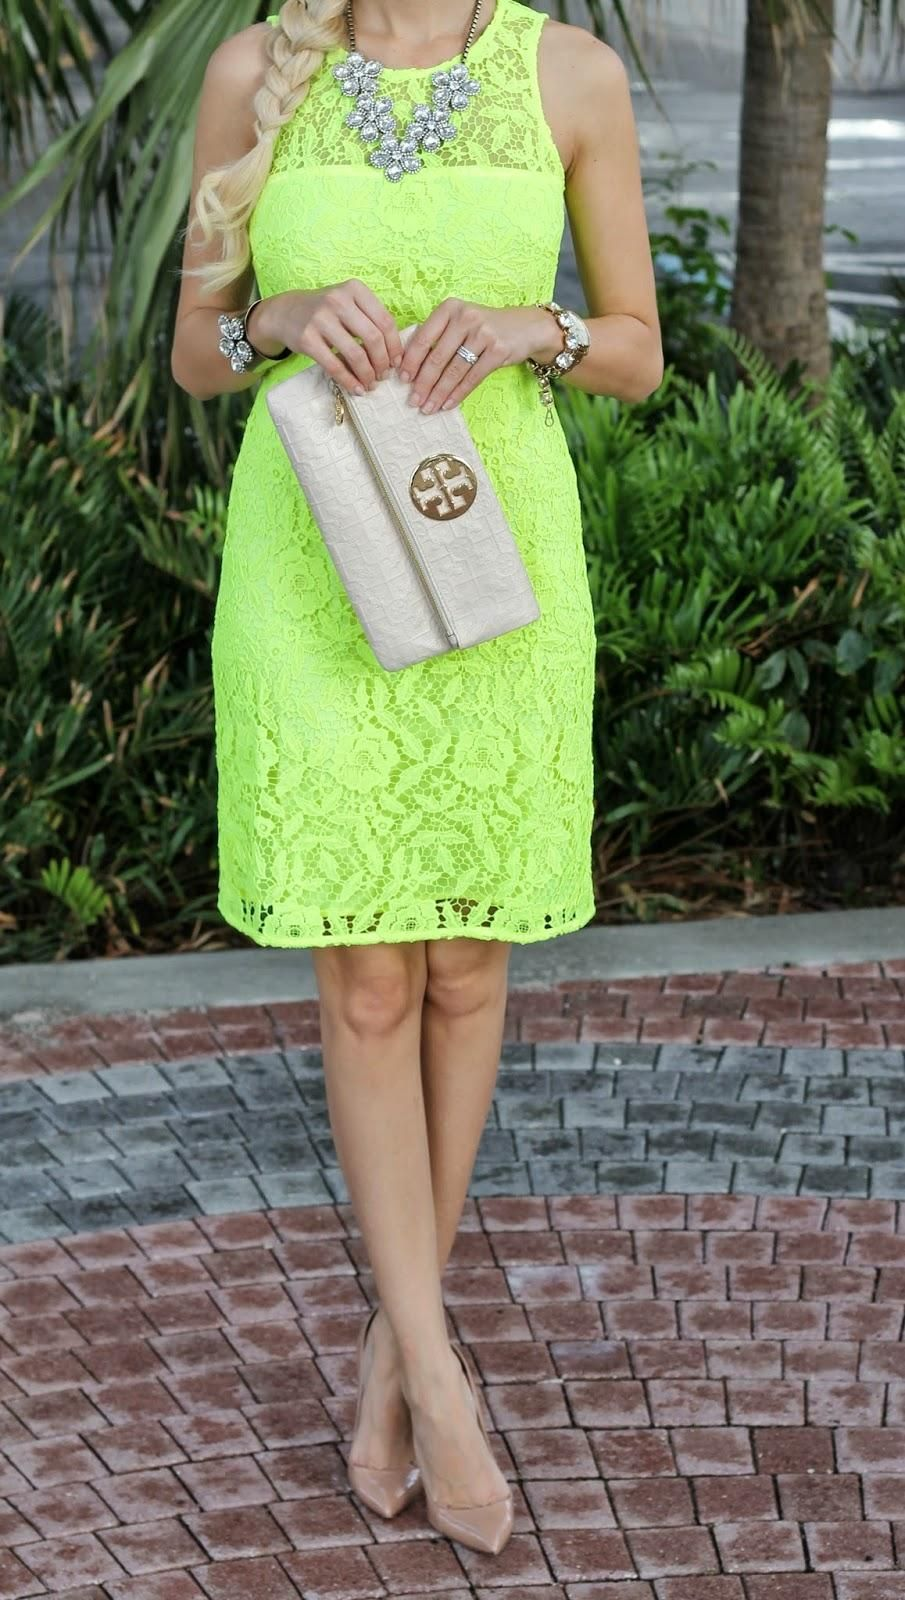 @Jade Scott pairs the dahlia necklace & cuff with neon lace & tory burch clutch